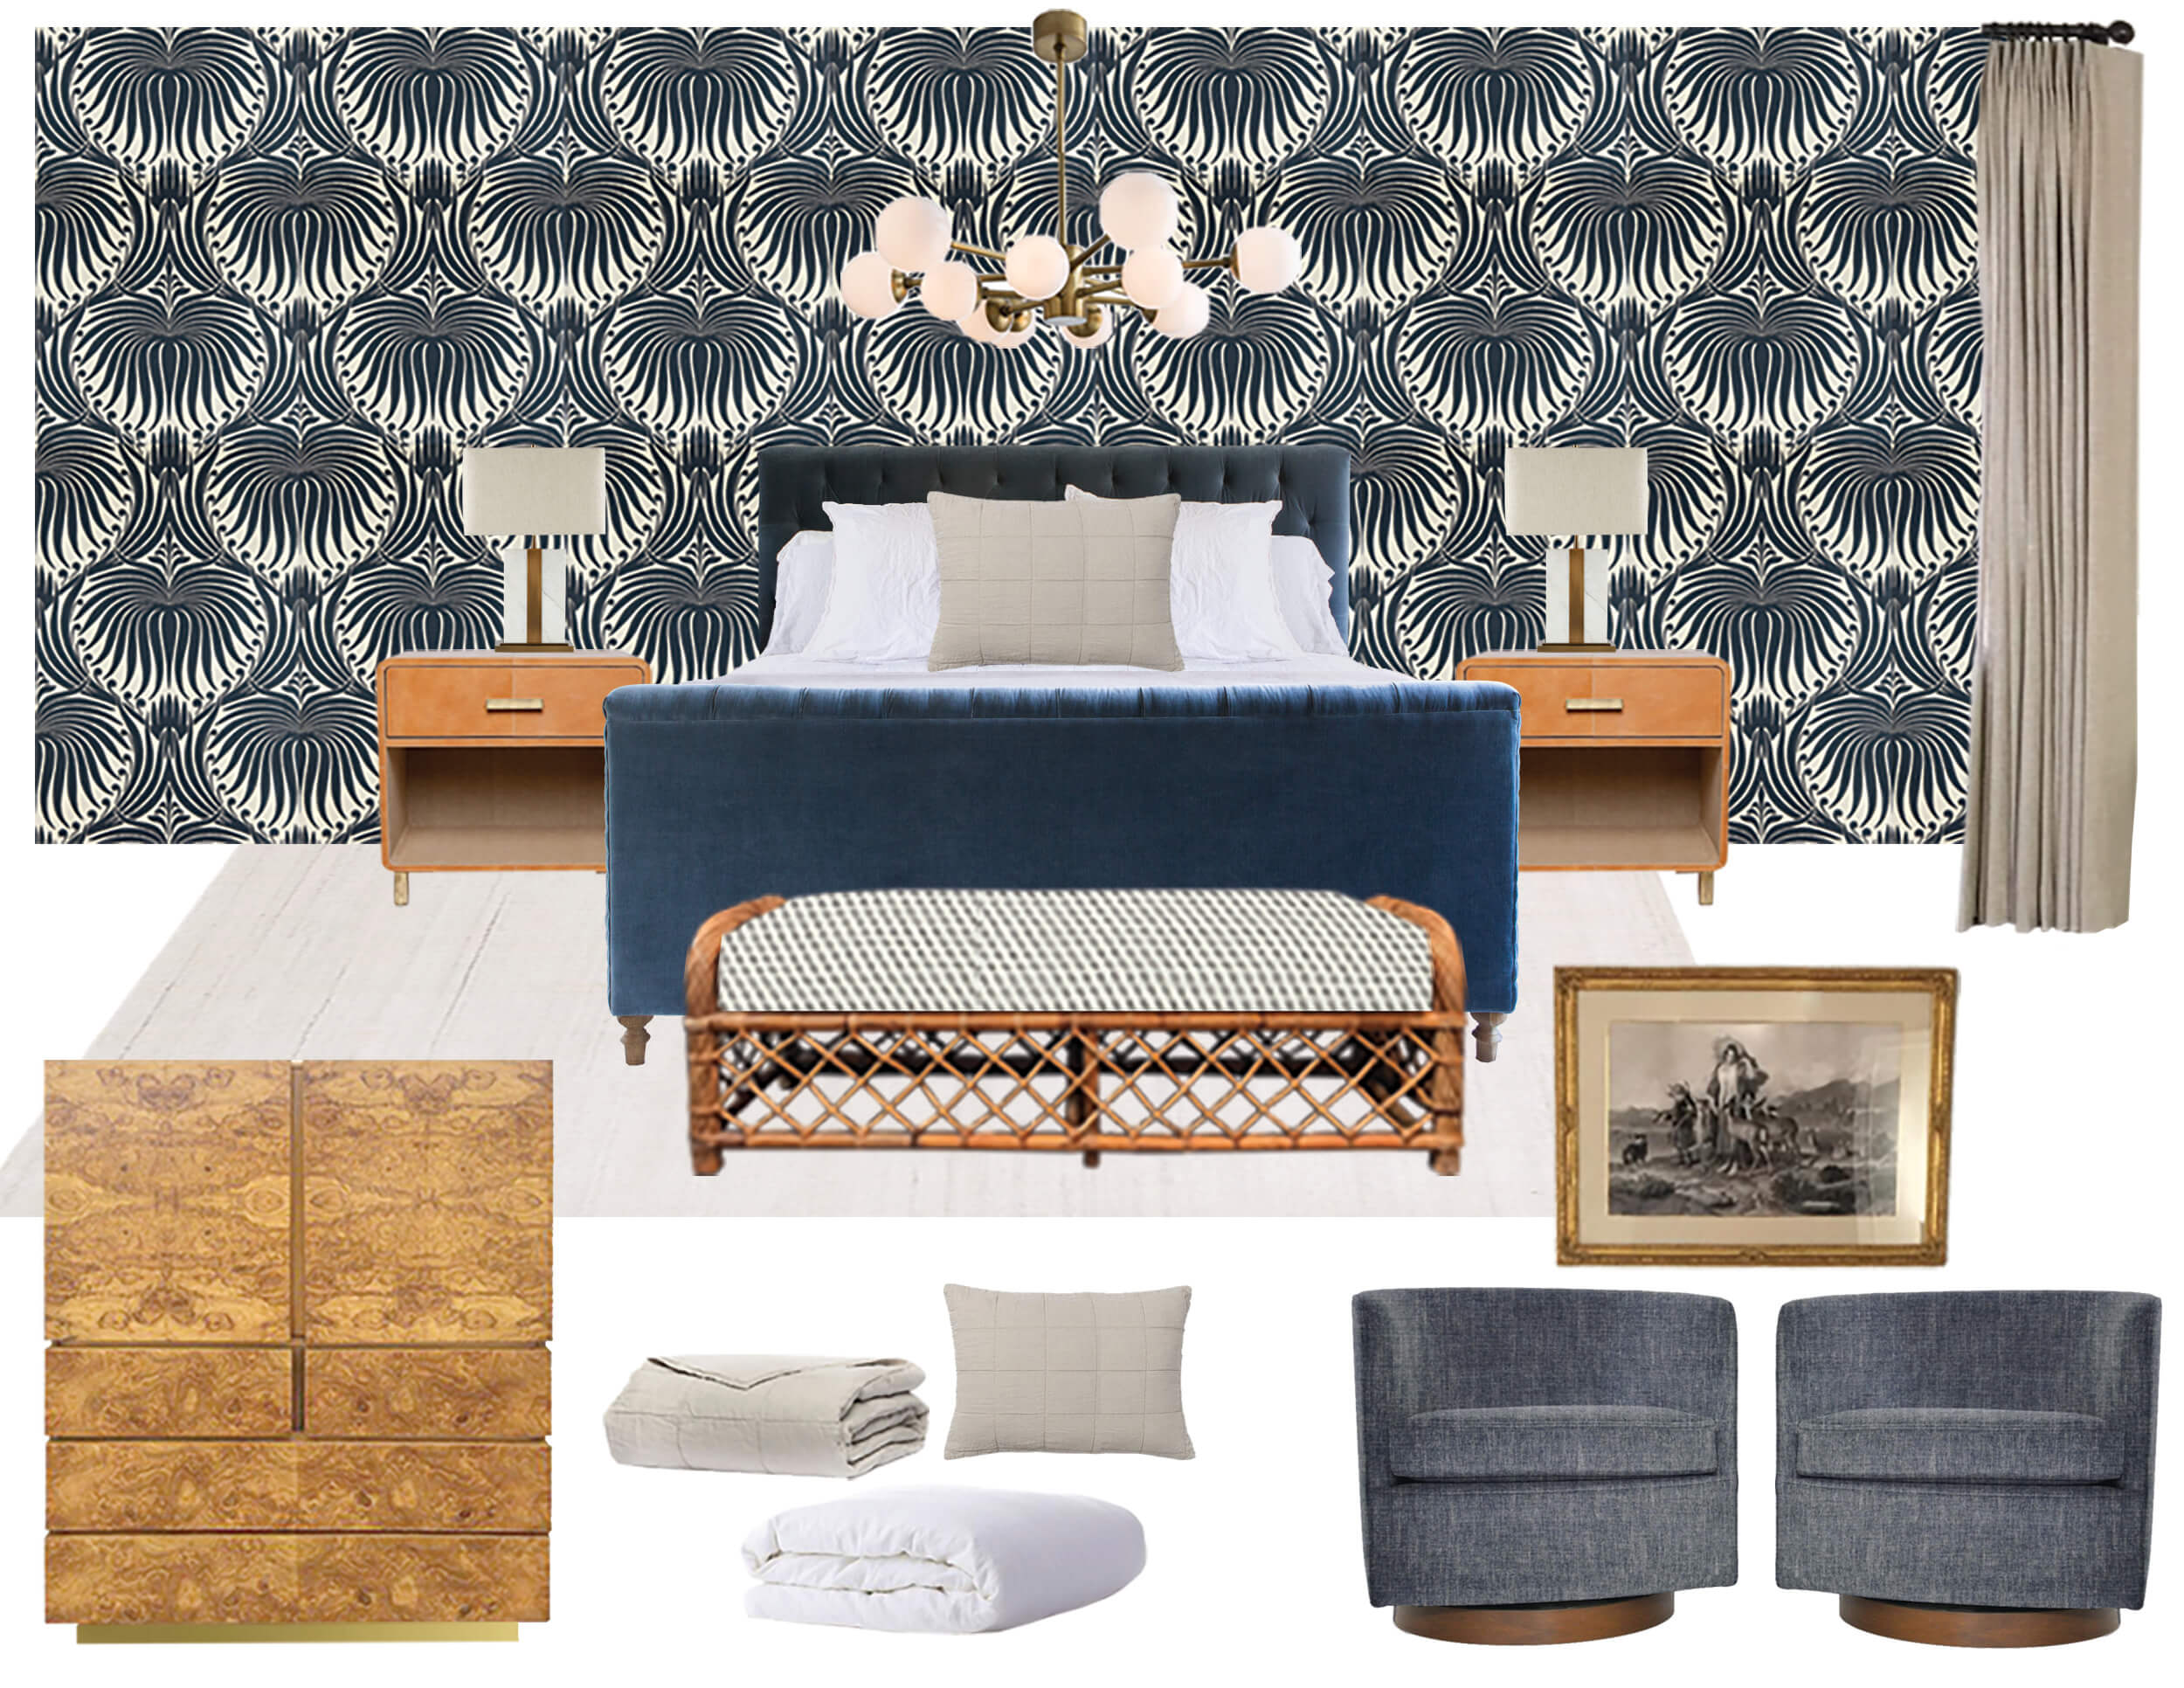 01_GINNY_MACDONALD_TRADITIONAL_BEDROOM_MOODBOARD